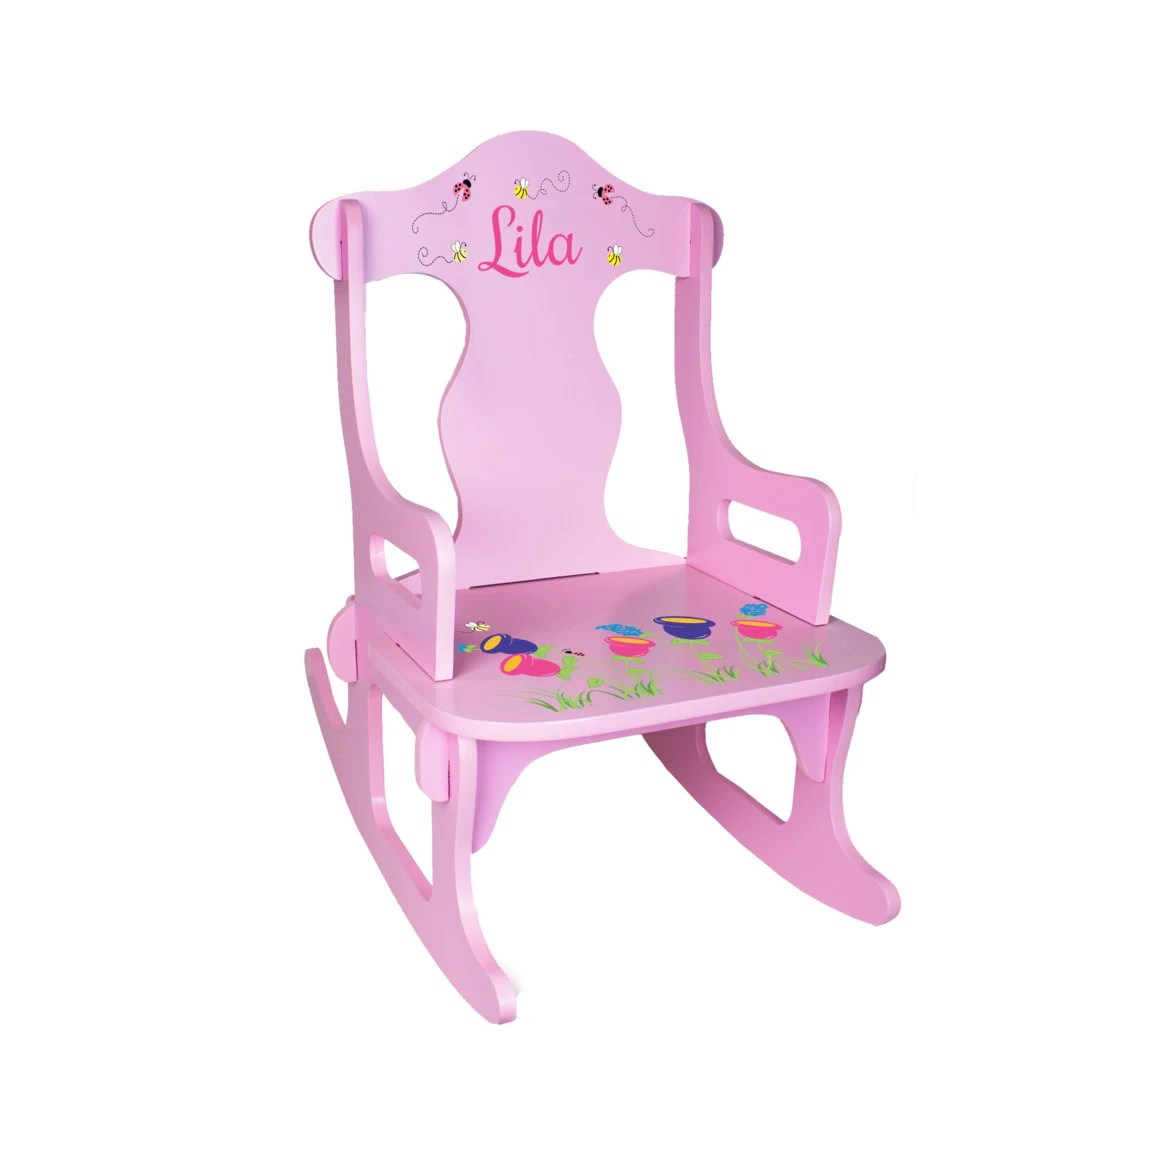 Personalized Chairs Personalized Kids Rocking Chair Custom Pink By Wizkickgifts